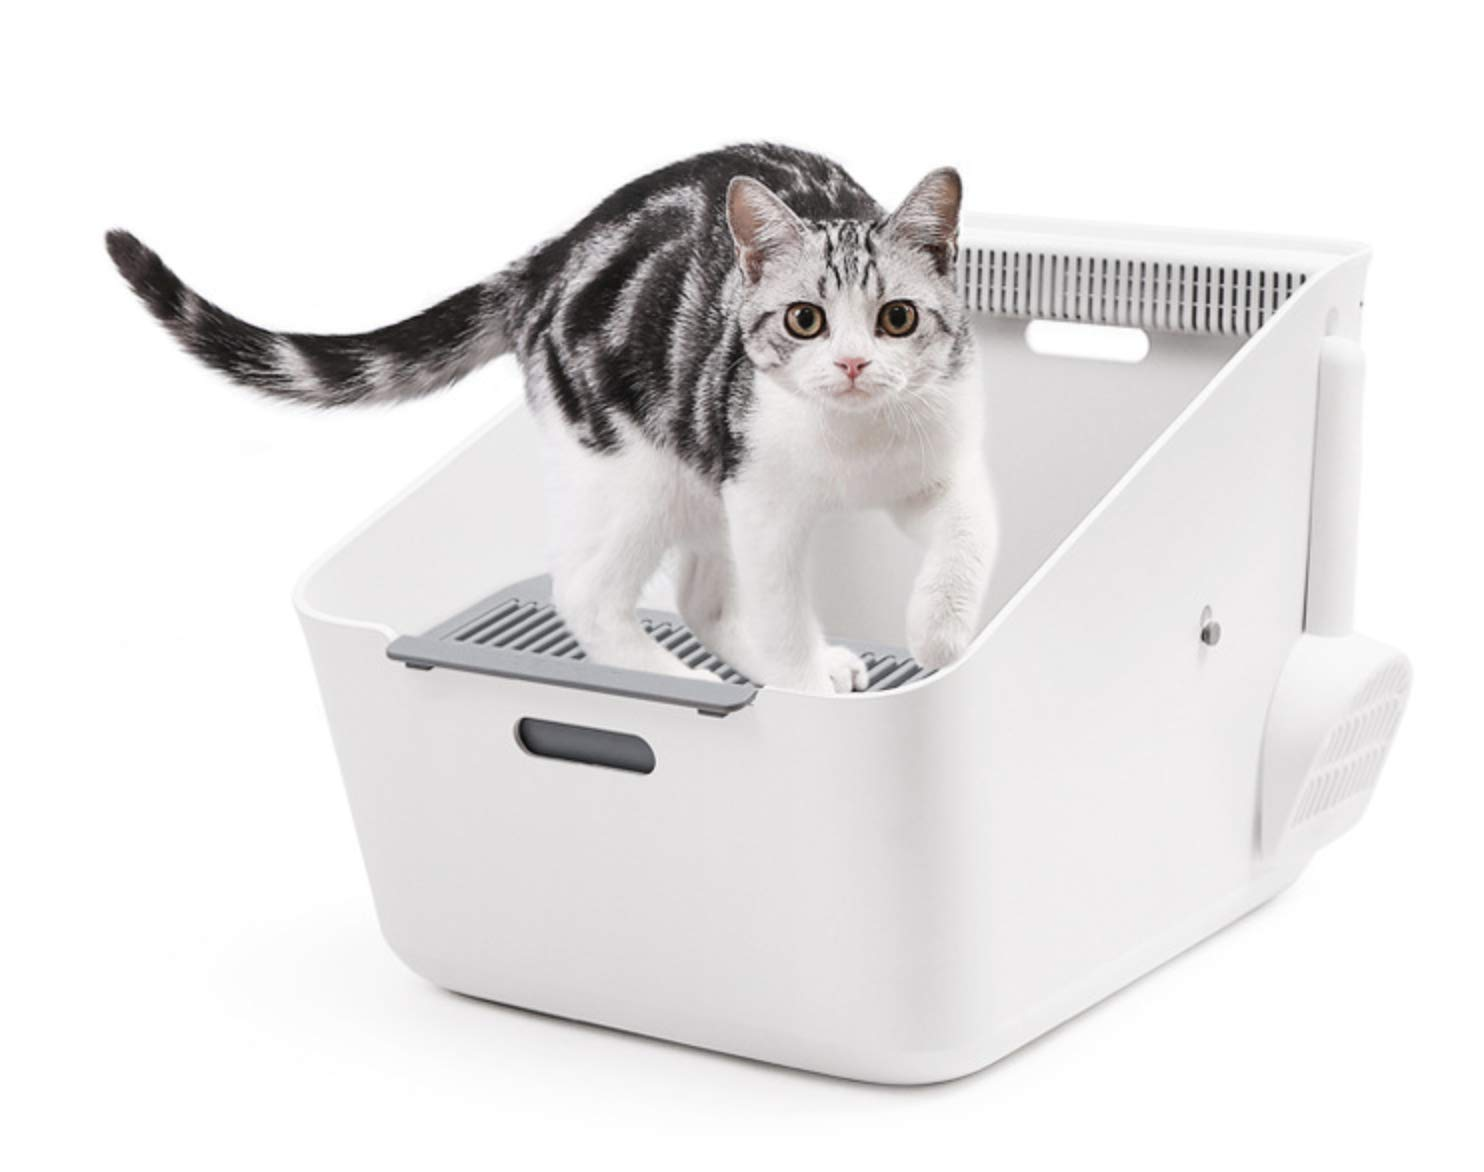 Domie Cat Litter Box, Self Cleaning Litter Box by PETKIT by Domie